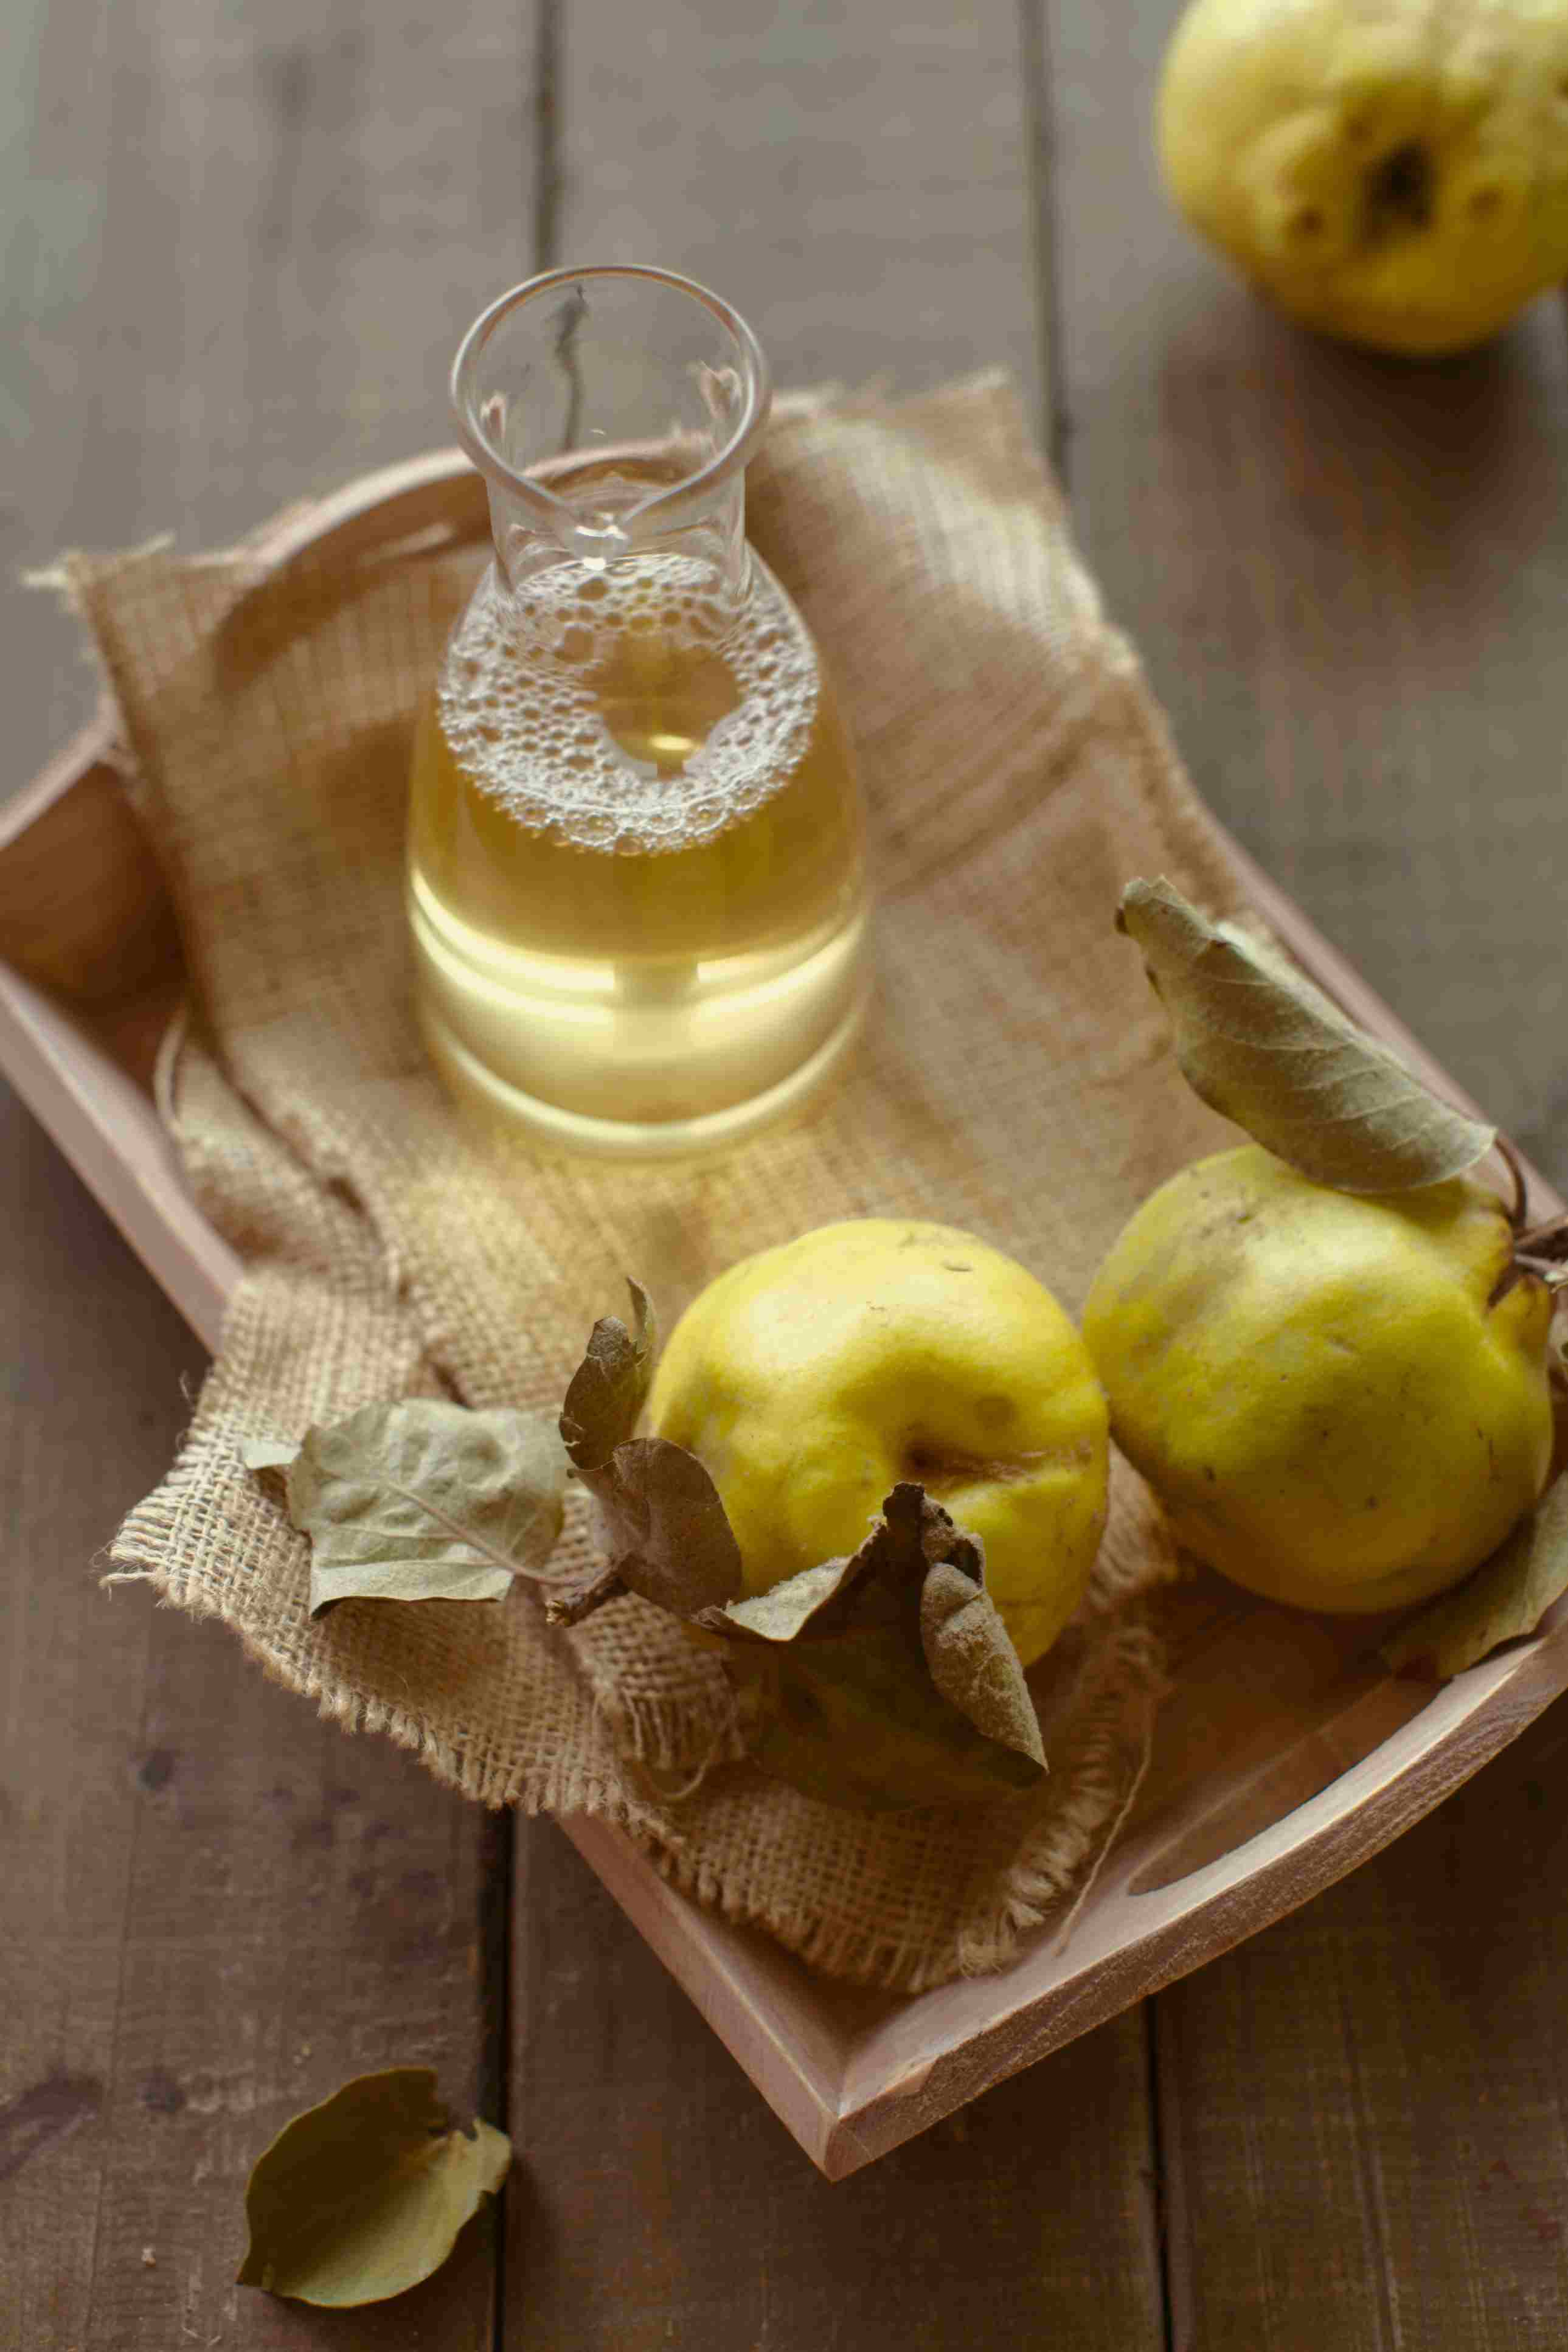 Delicious Quince Juice Recipe and an Important Point!